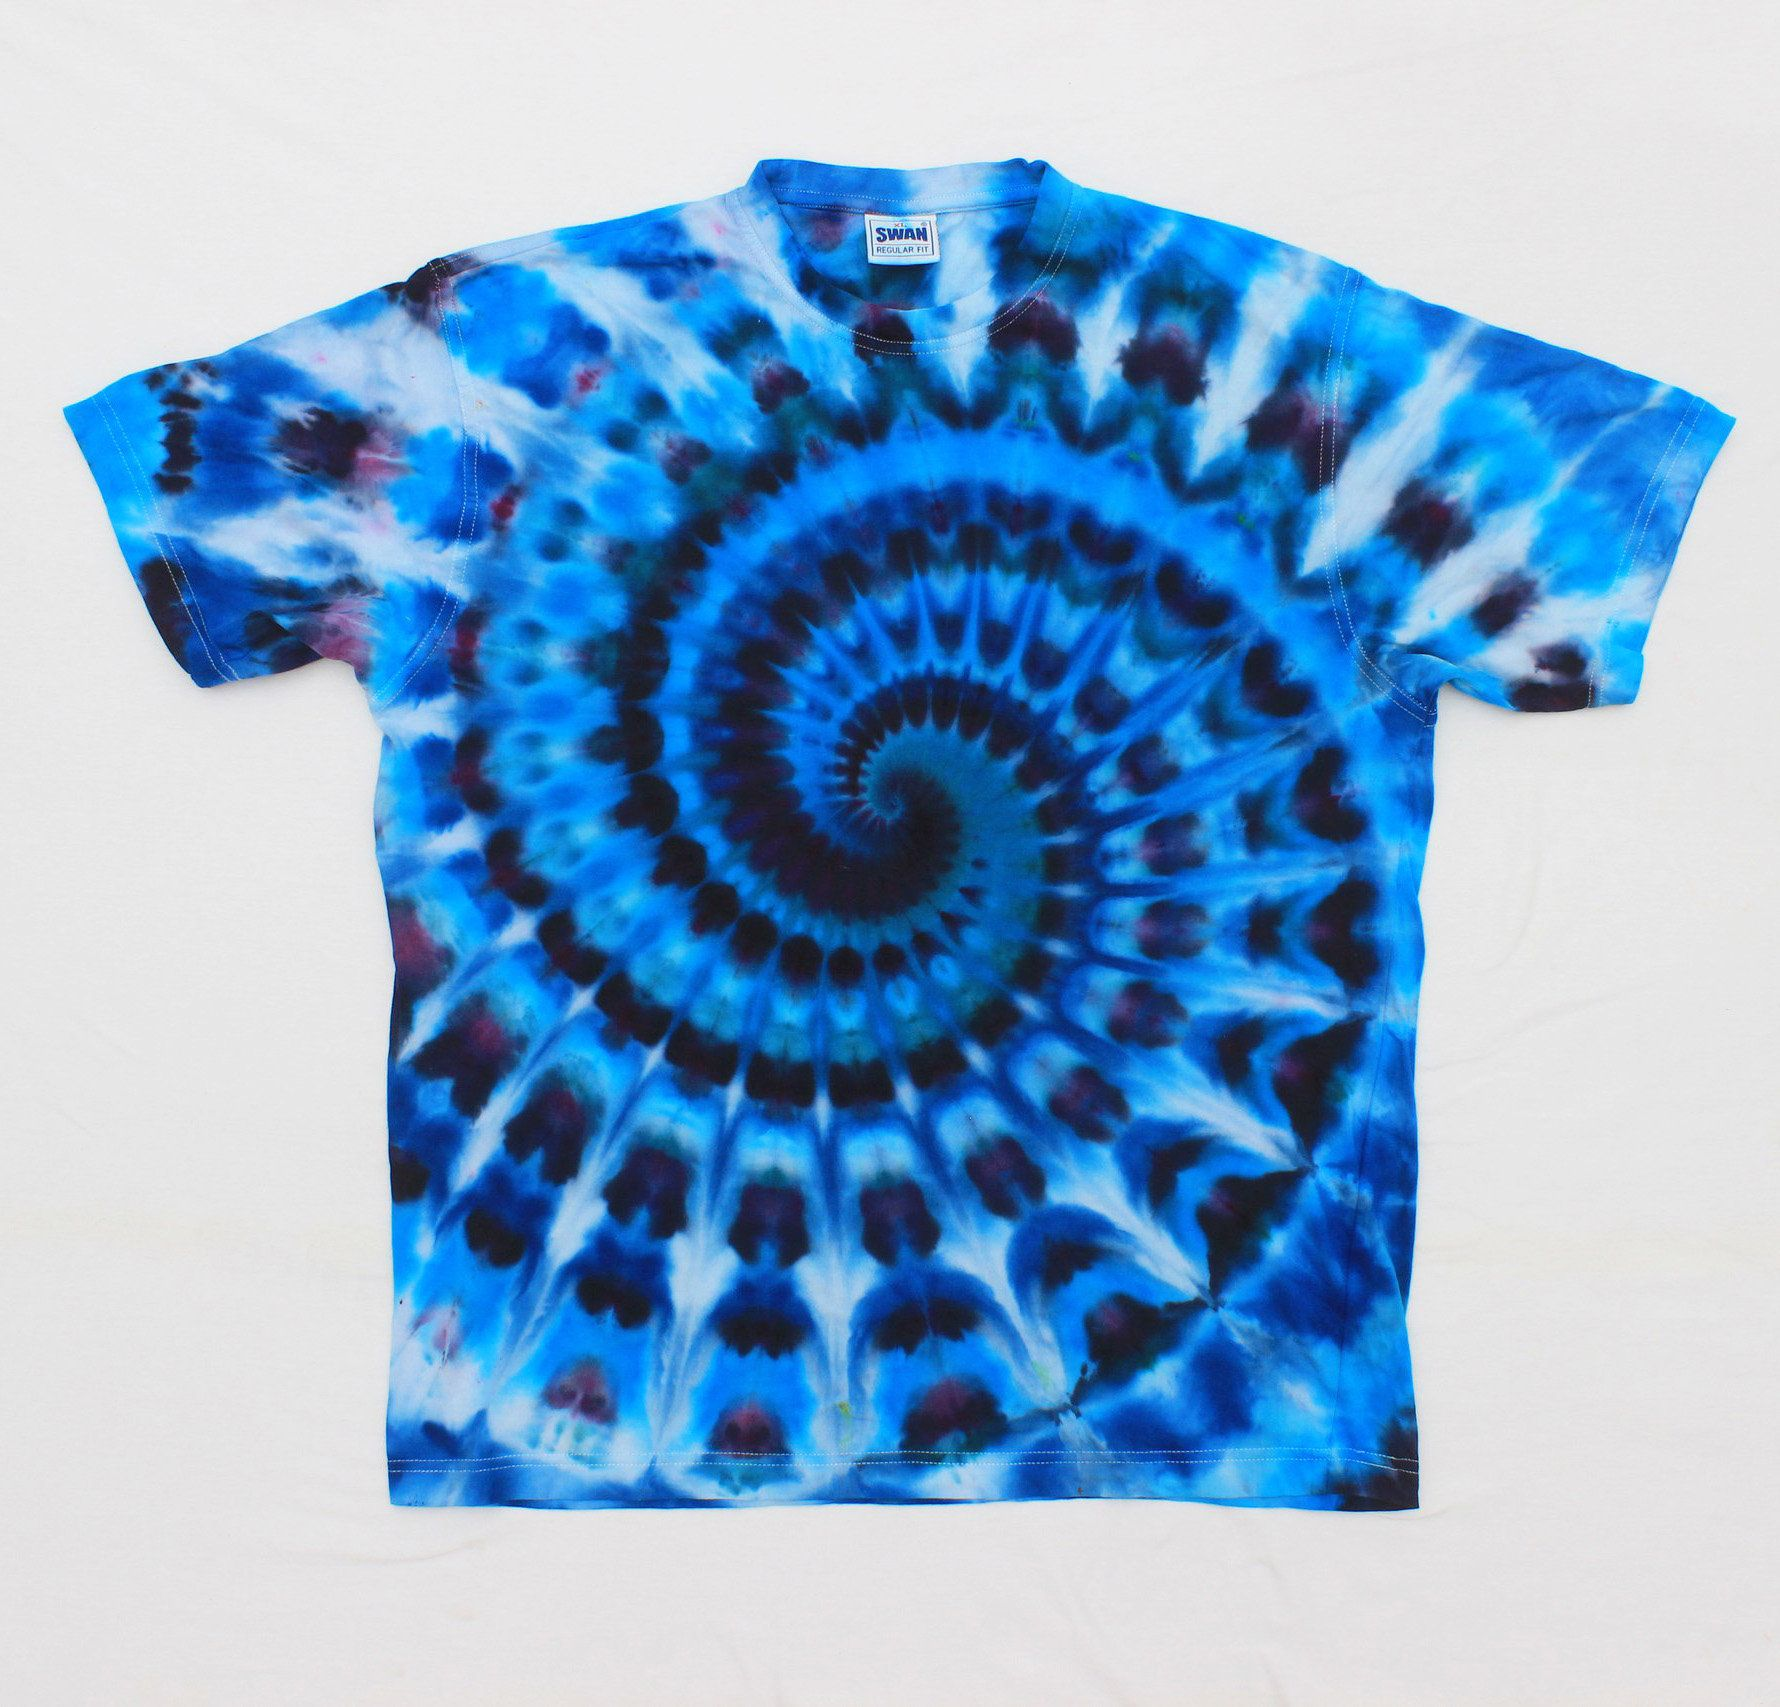 Tie Dye Soft Pink Earthy Сolors Spiral Psychedelic Swirl T-shirt Size XL VPqlg0pS